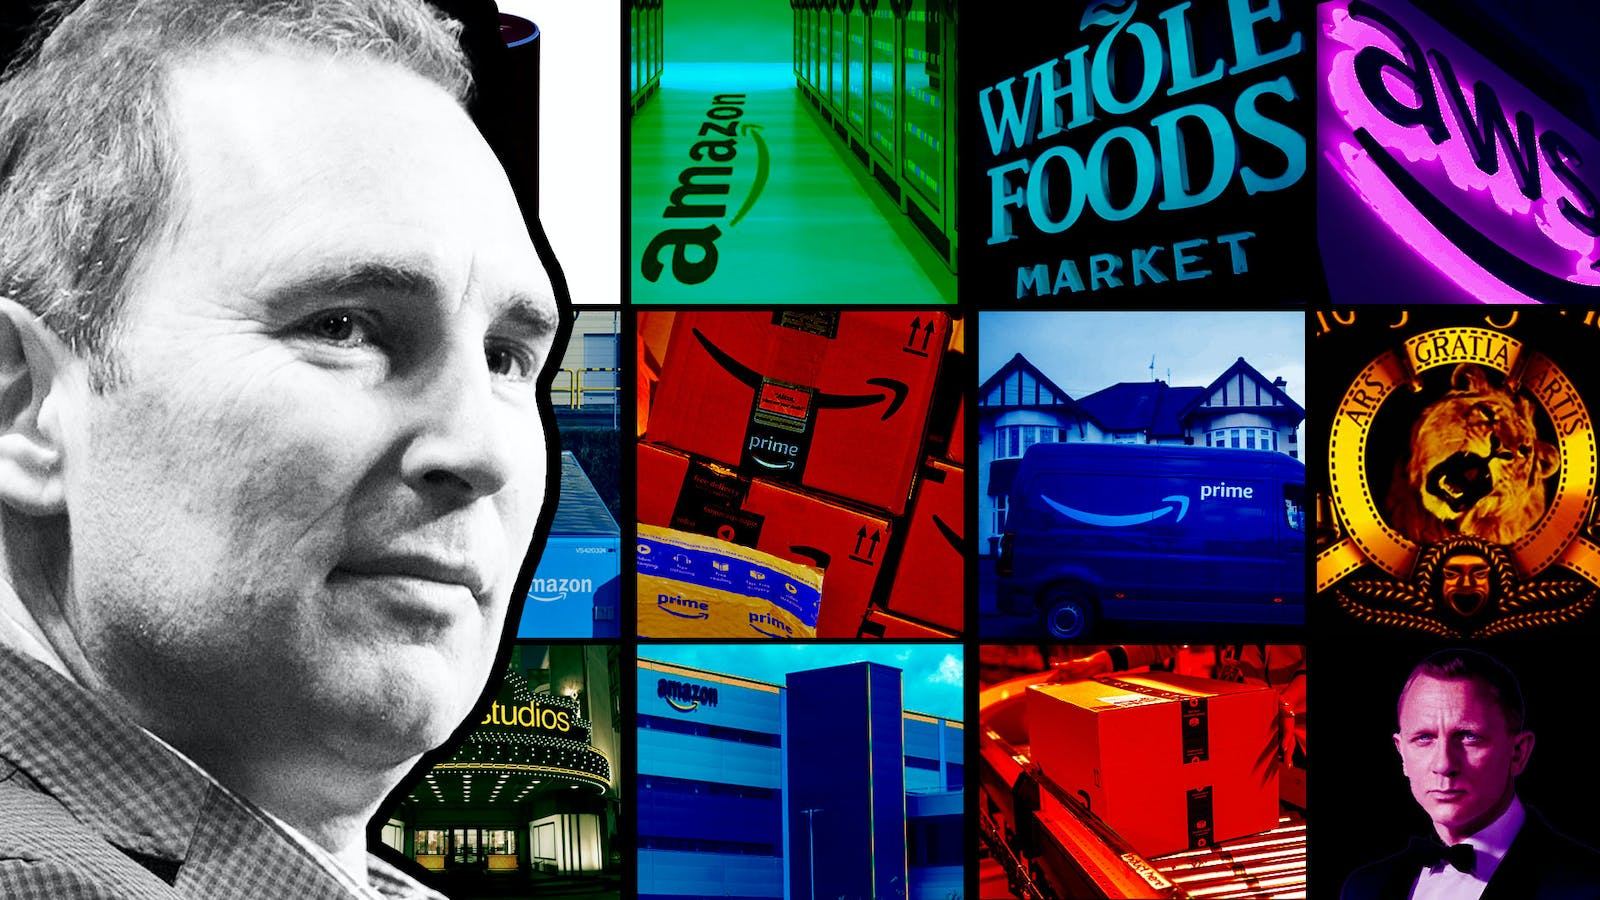 Incoming Amazon CEO Andy Jassy. Photos by Bloomberg. Art by Mike Sullivan.